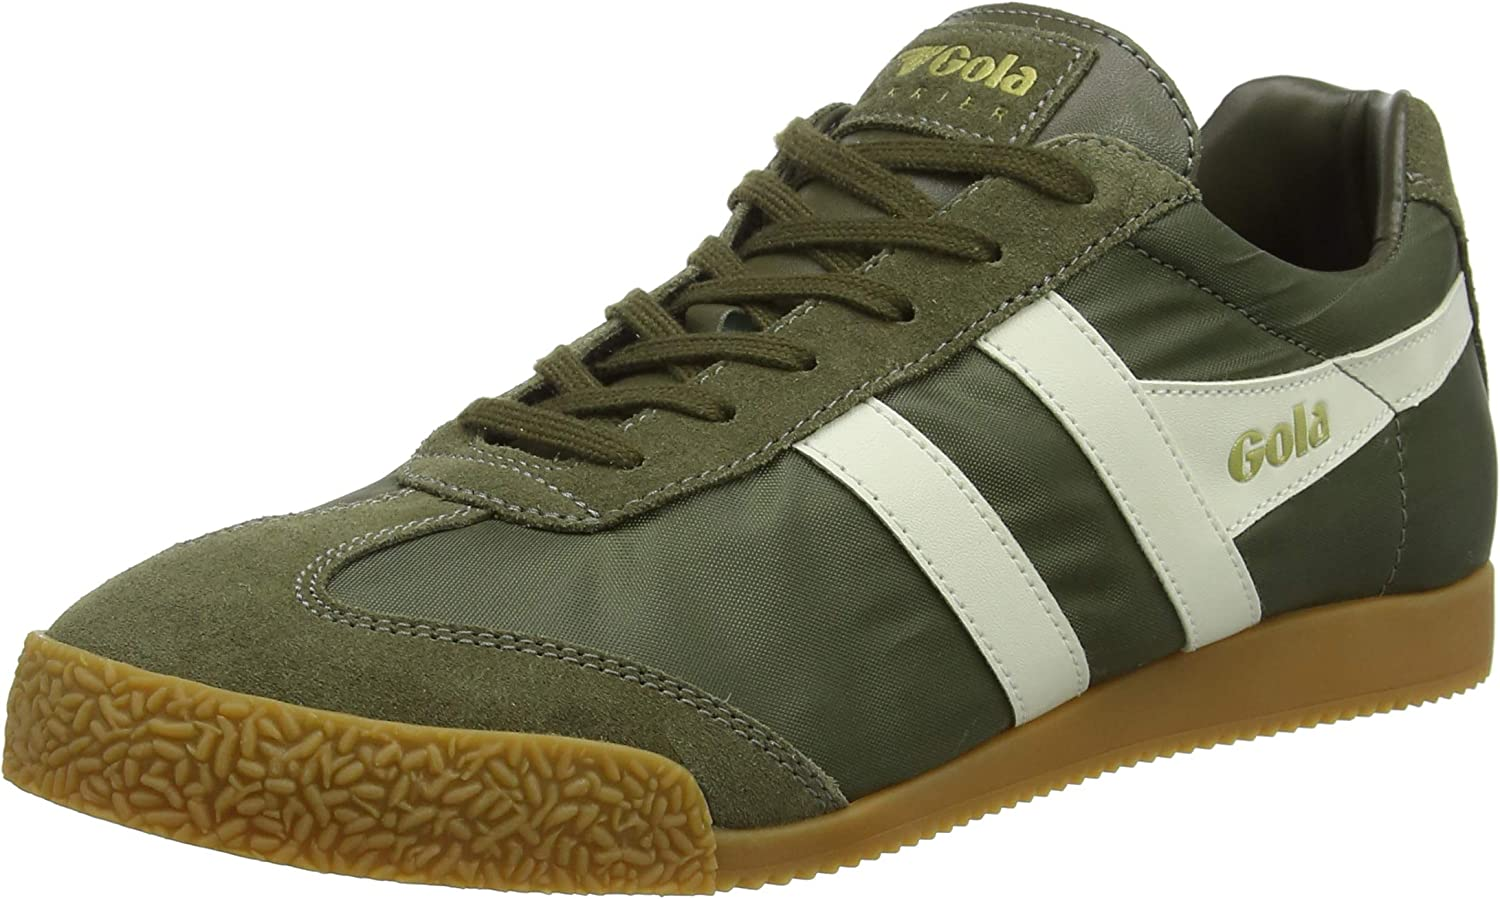 Gola Mens Harrier Nylon Suede Trainers